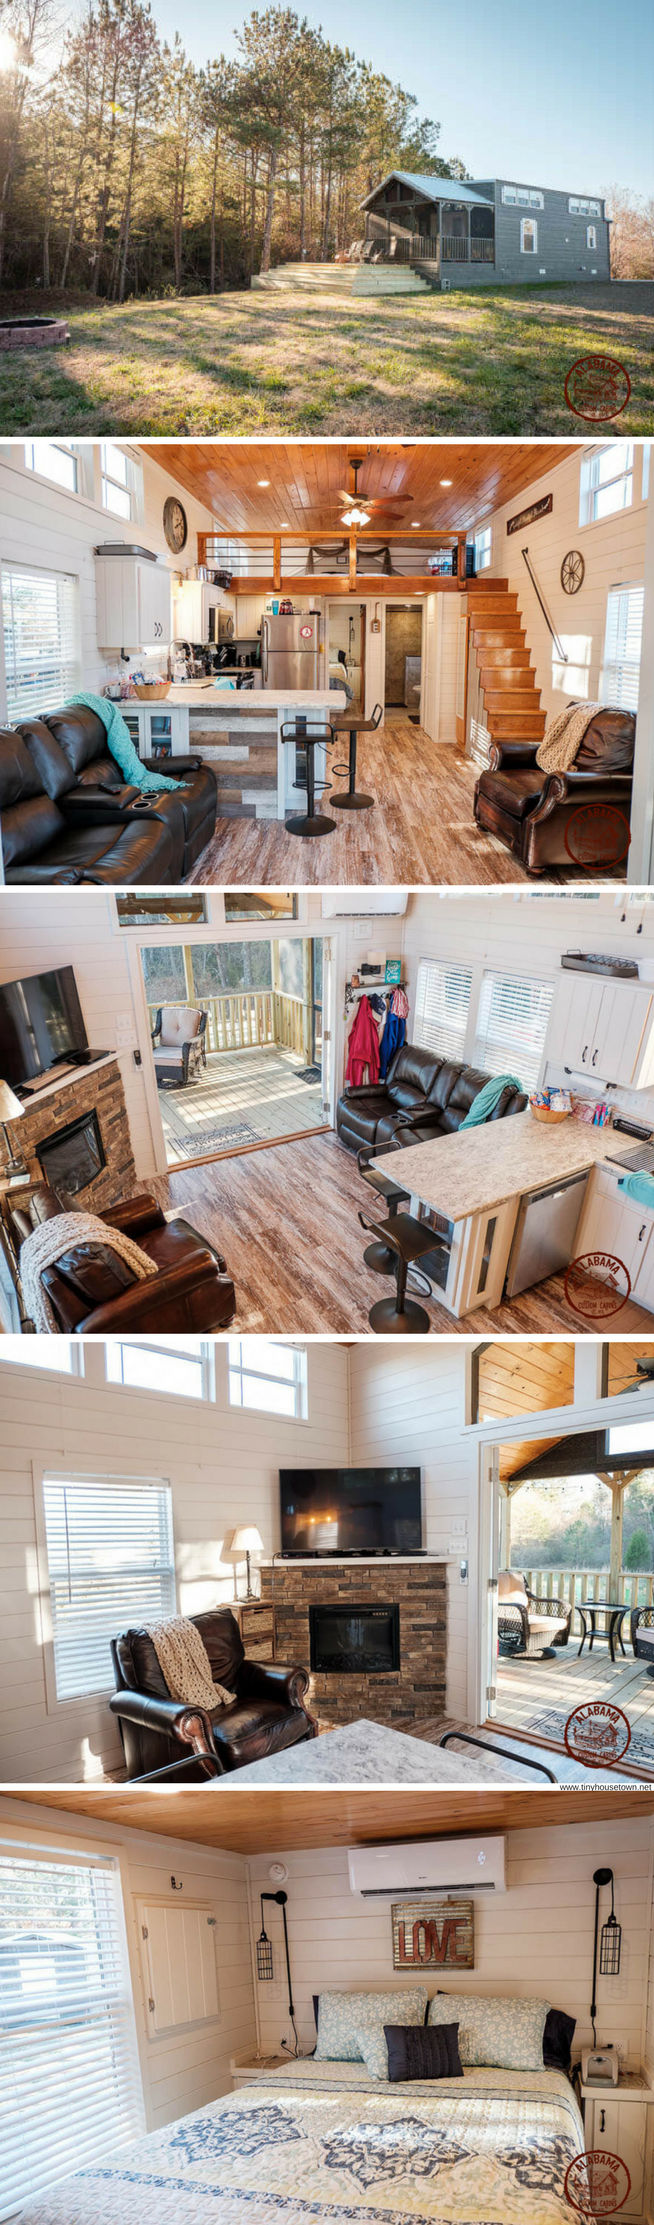 The Kelsey Cottage: a two bedroom park model home with a